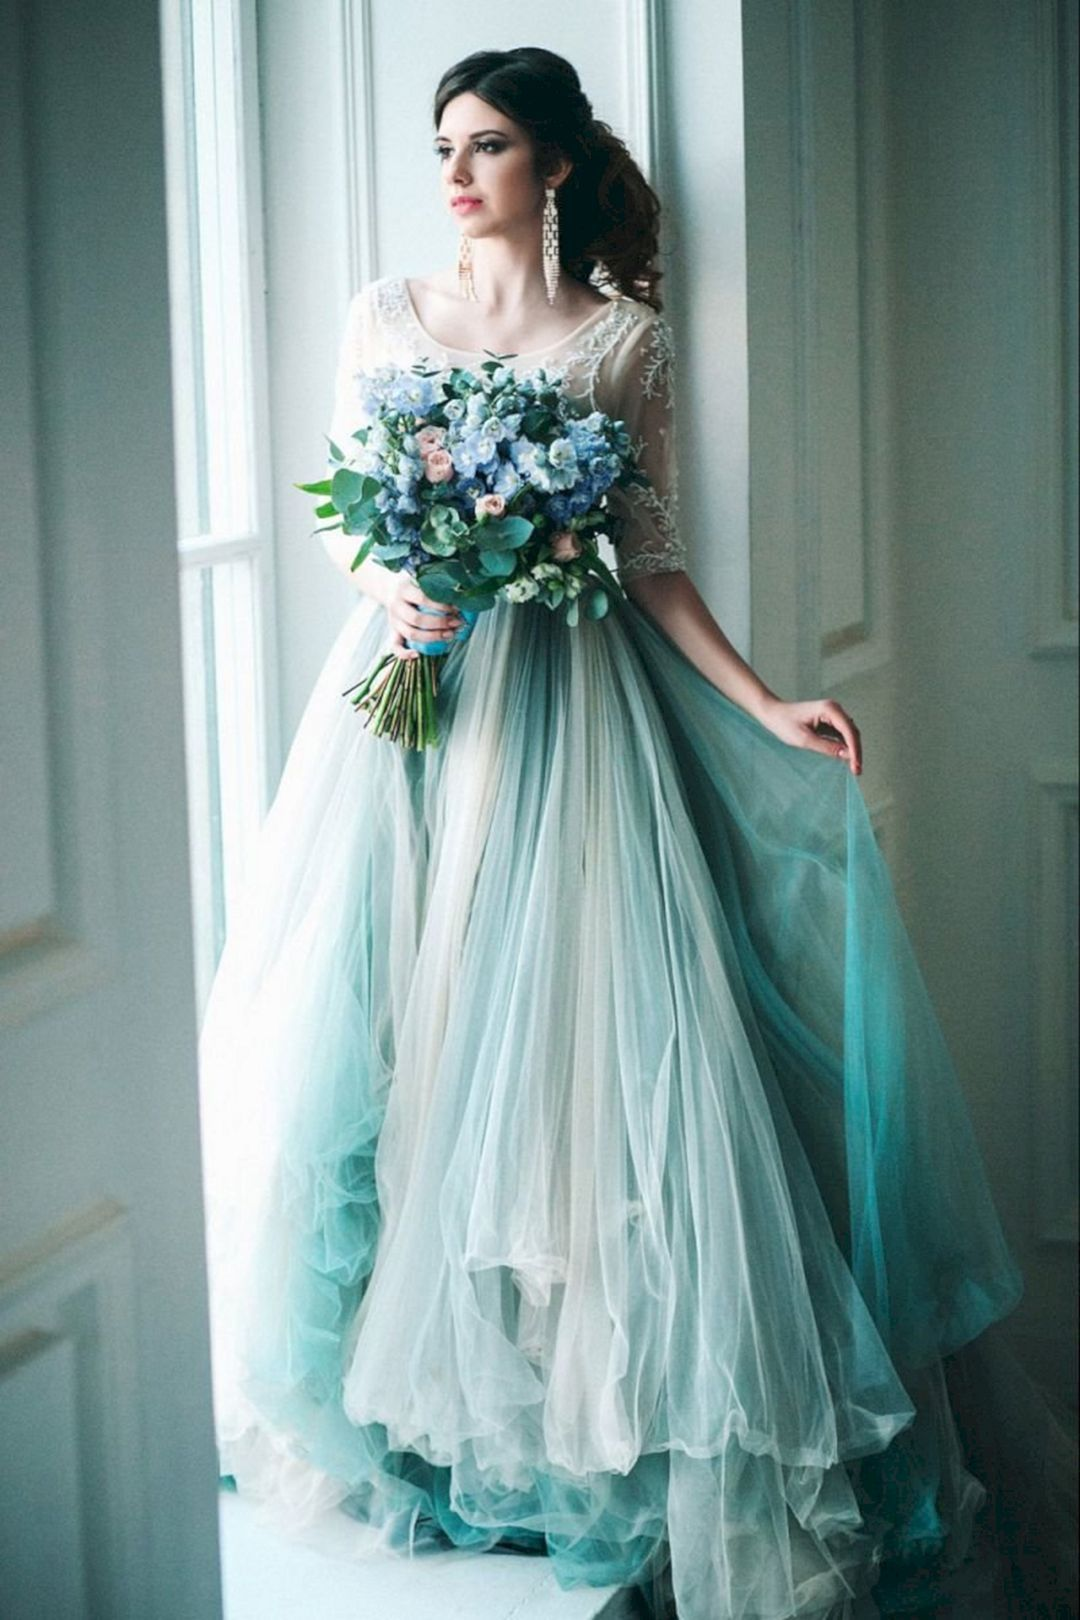 20 Awesome Colorful Wedding Dress Ideas For Perfect Wedding Colored Wedding Dresses Unique Wedding Dresses Color Wedding Dresses Unique [ 1620 x 1080 Pixel ]